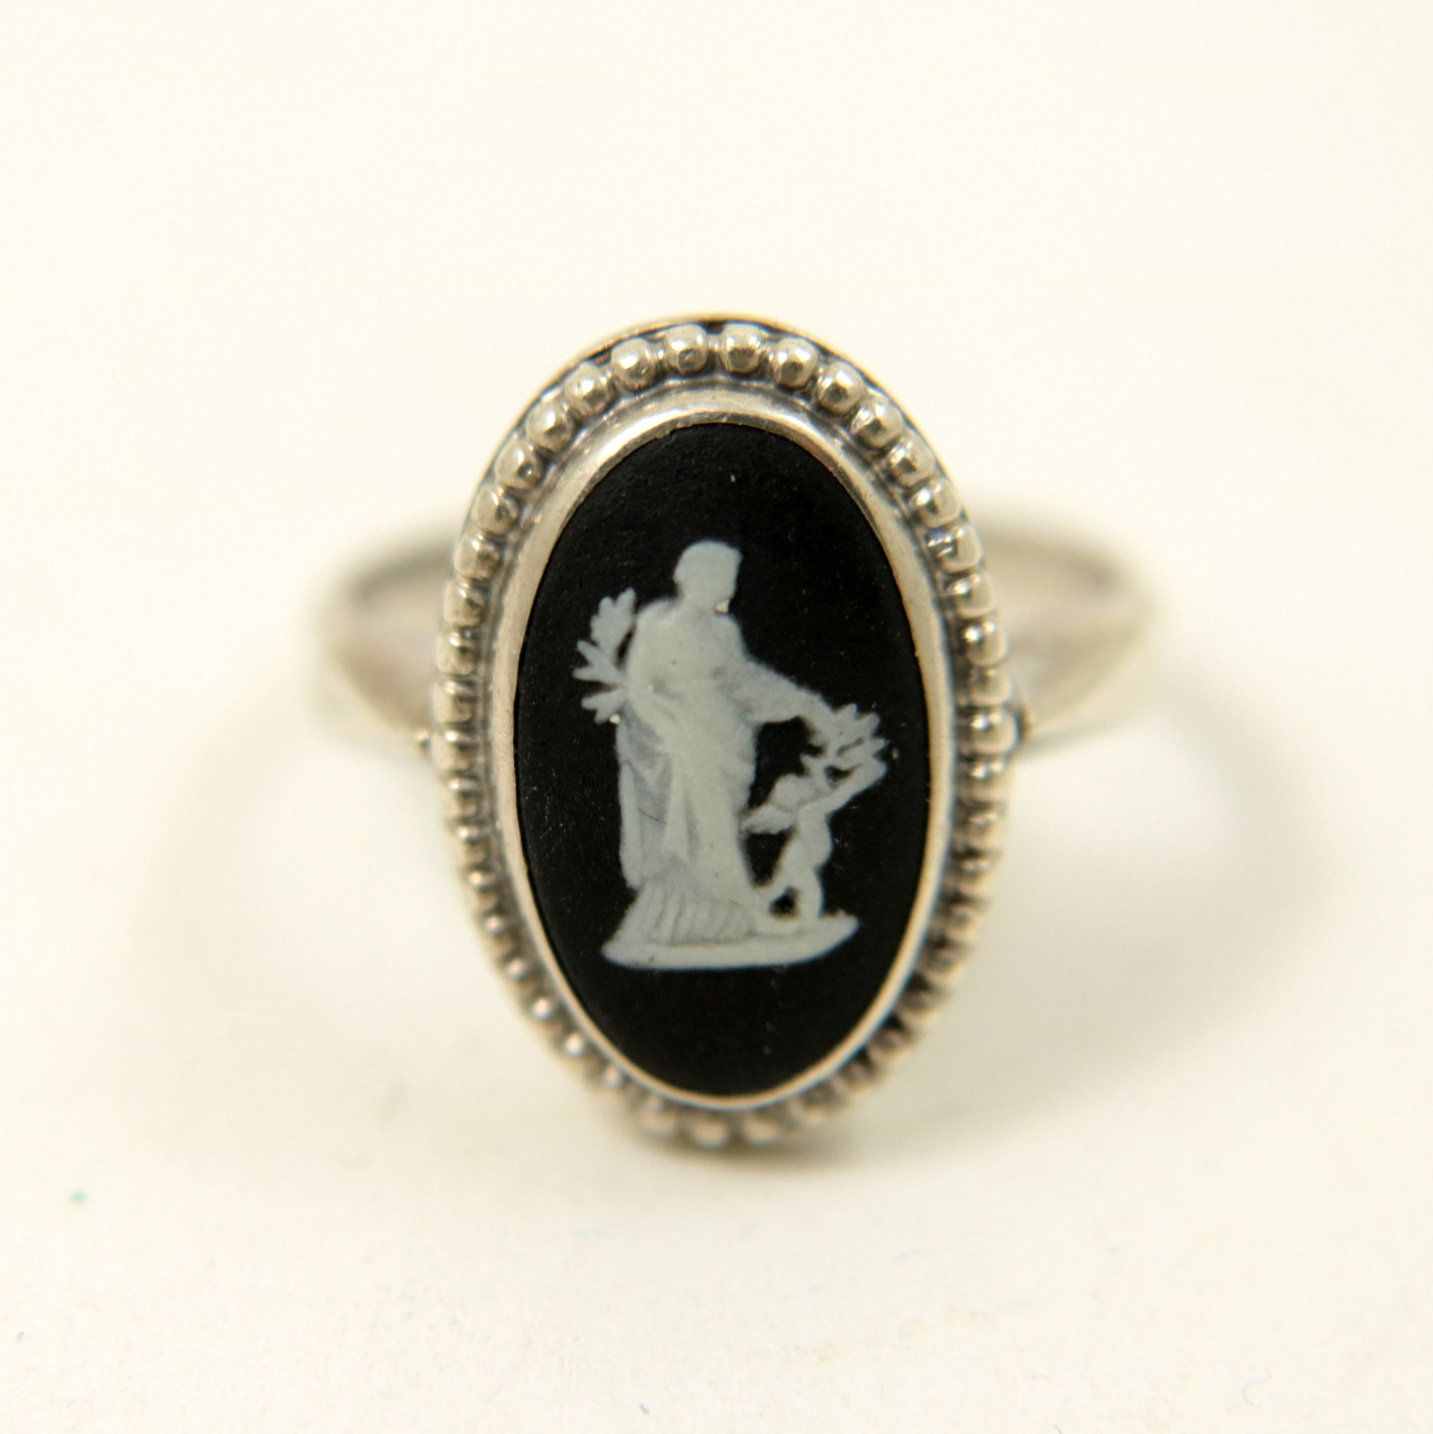 Handmade Ring Antique Vintage Old Silver Face Design Band Ring 7.5 us Size